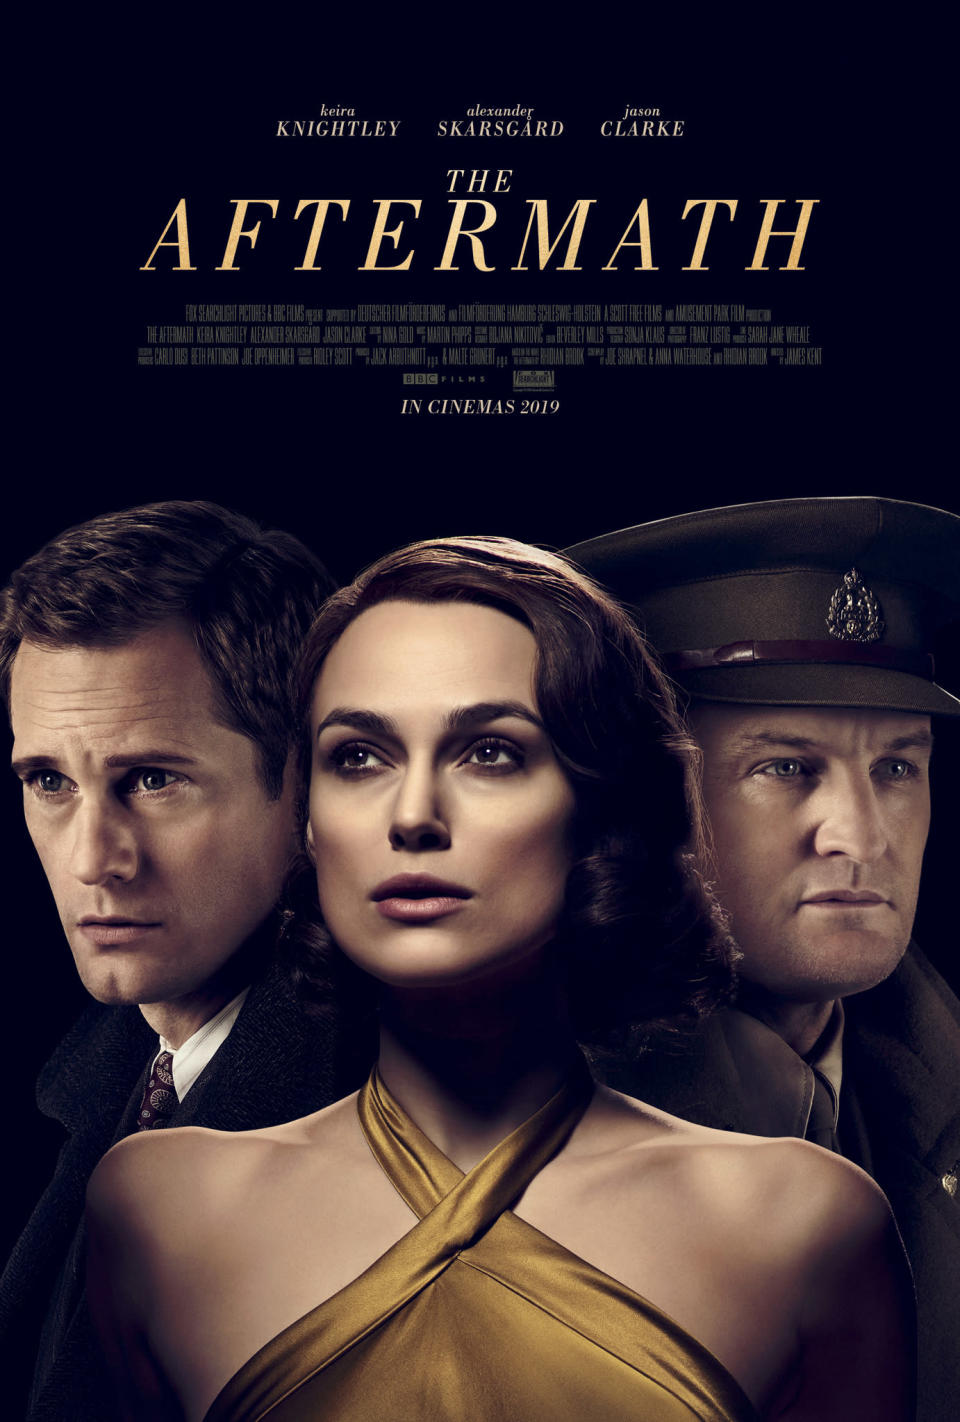 The Aftermath stars Keira Knightley, Alexander Skarsgard and Jason Clarke